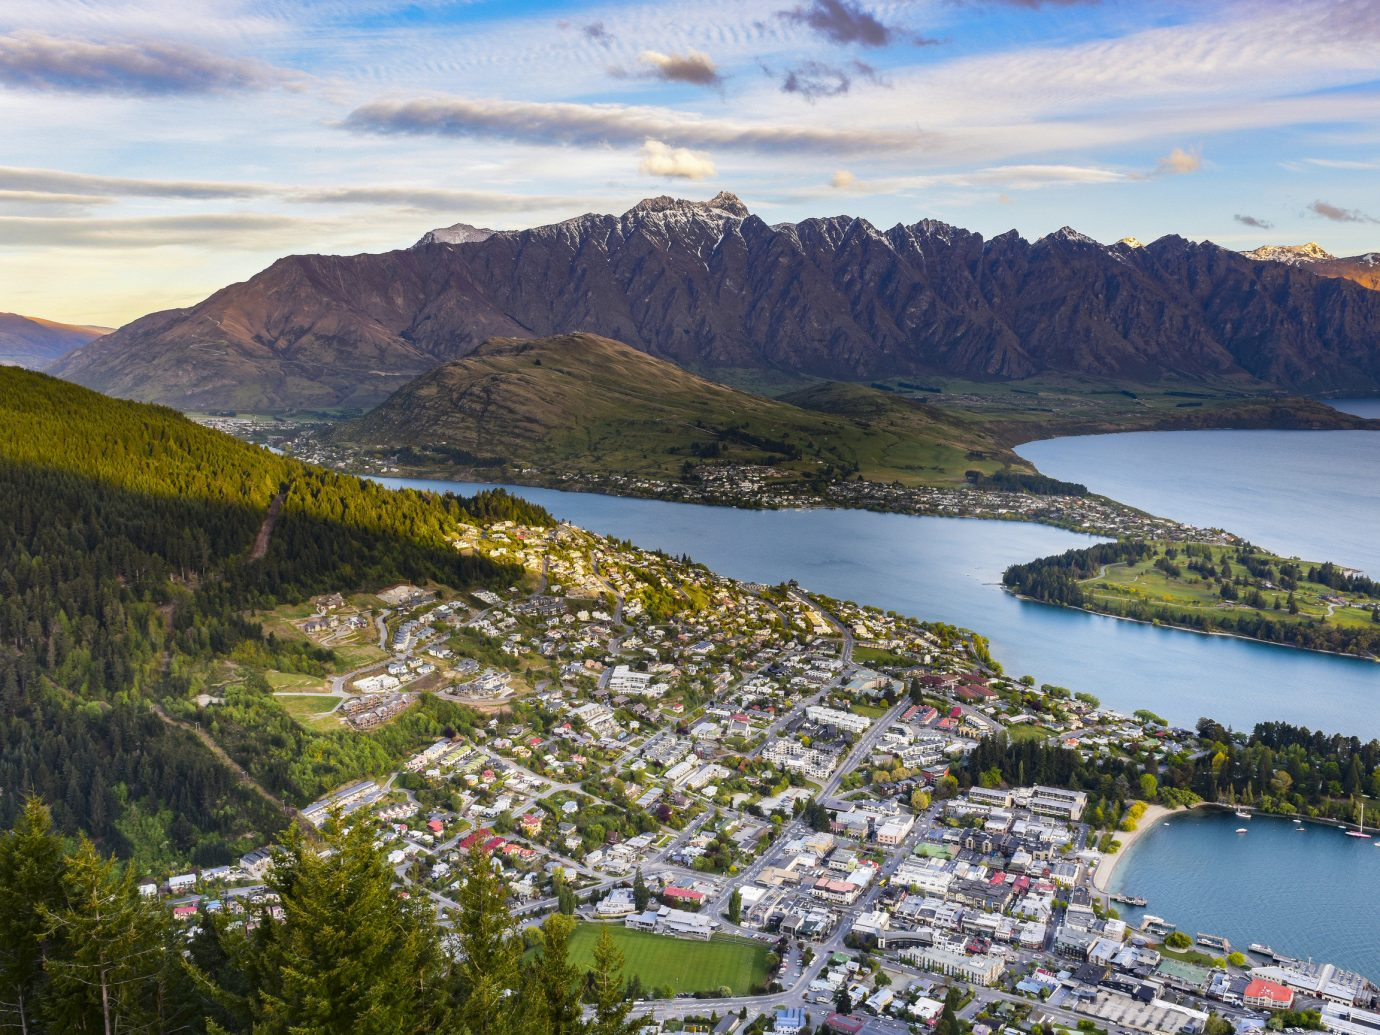 Aerial shot of a bay city in New Zealand